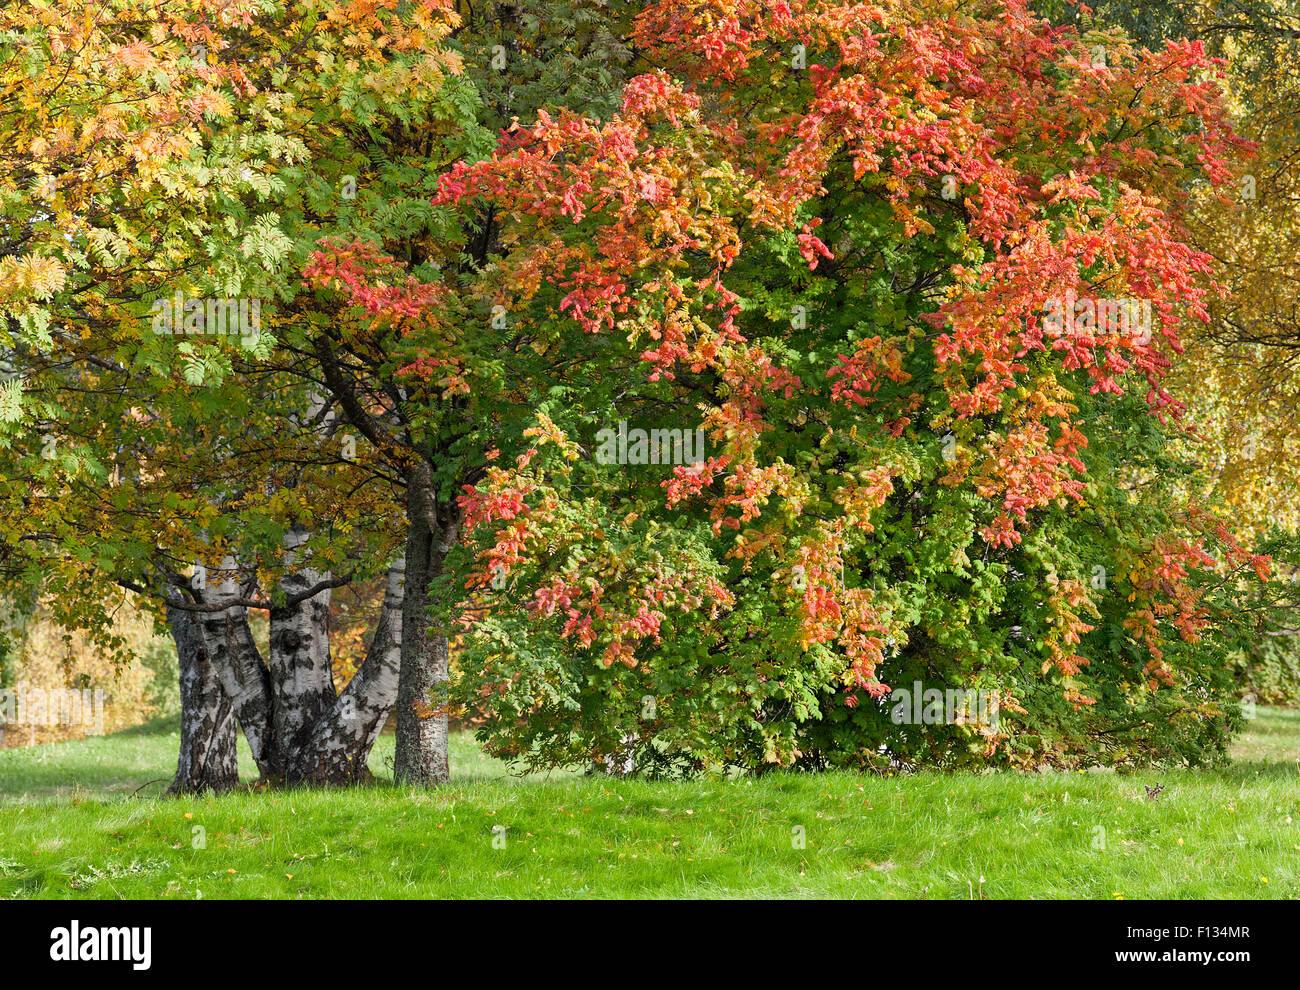 Lush Green Rowan Leaves On Stock Photos & Lush Green Rowan Leaves On ...